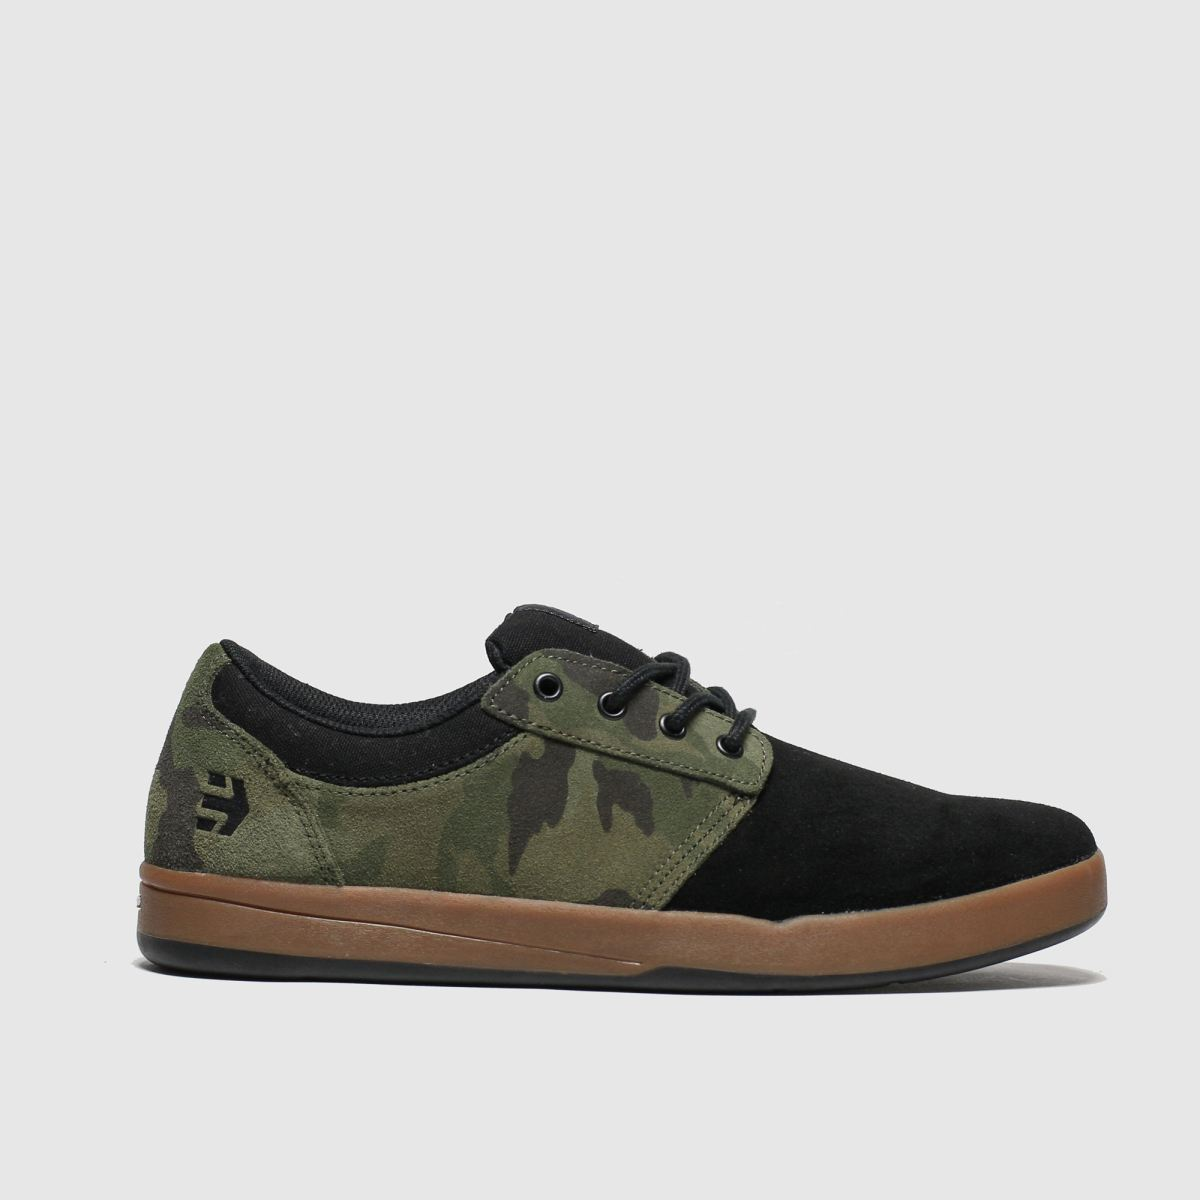 Etnies Etnies Black & Green Score Trainers